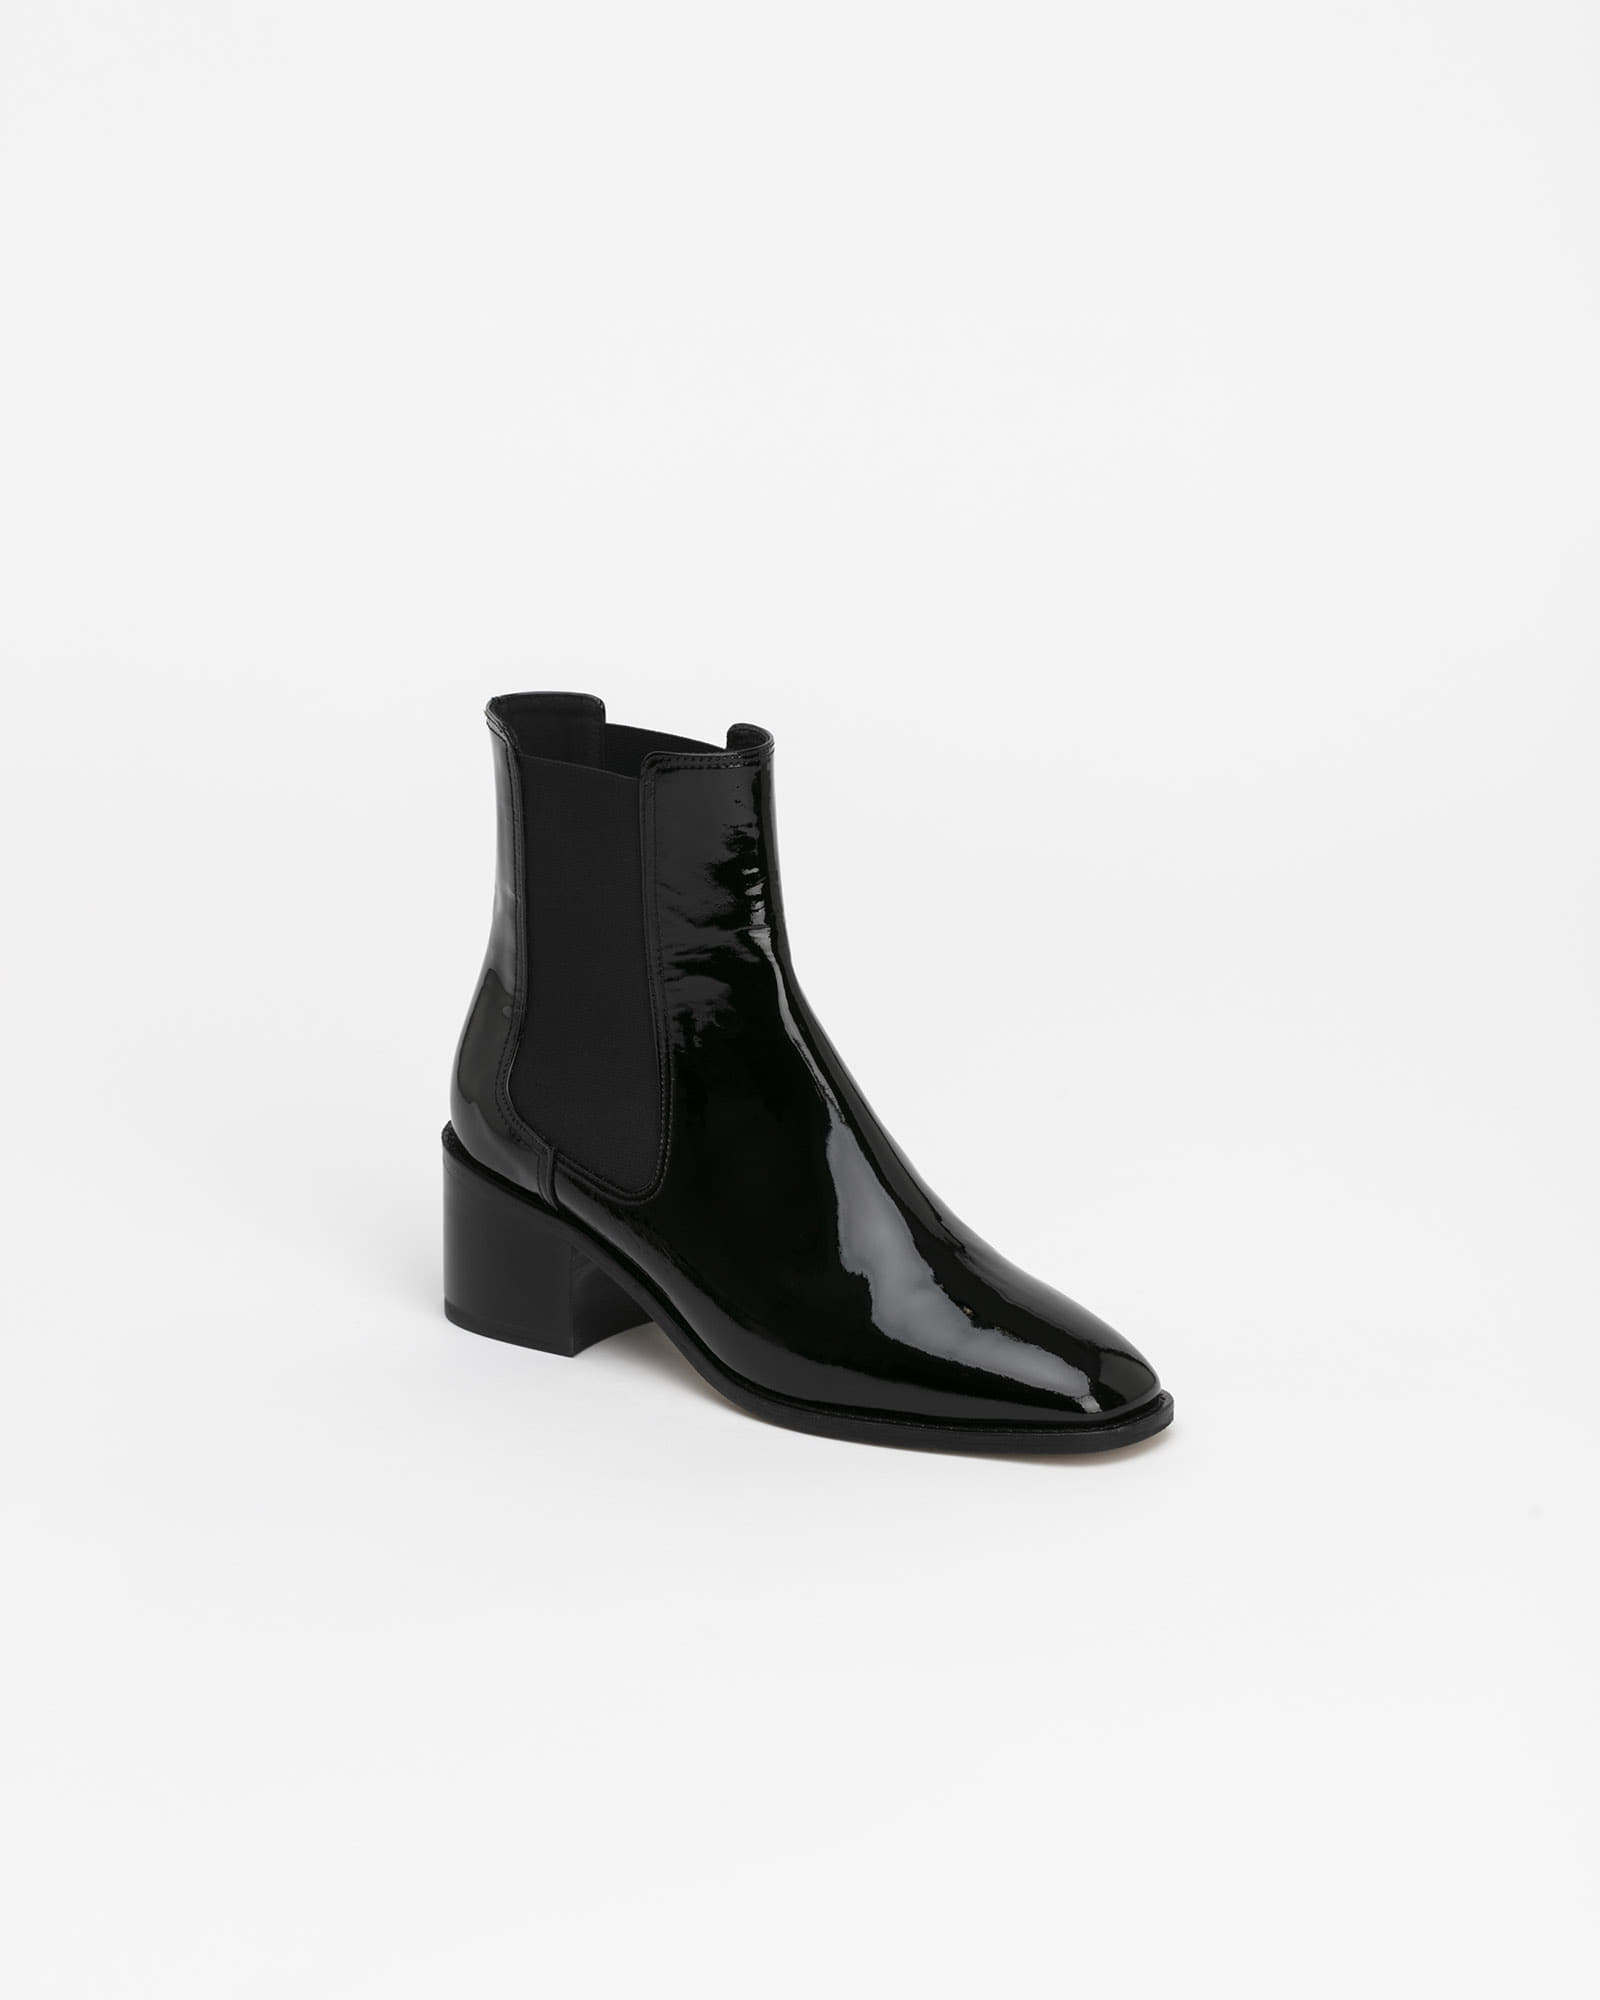 Pantoma Chelsea Boots in Black Patent